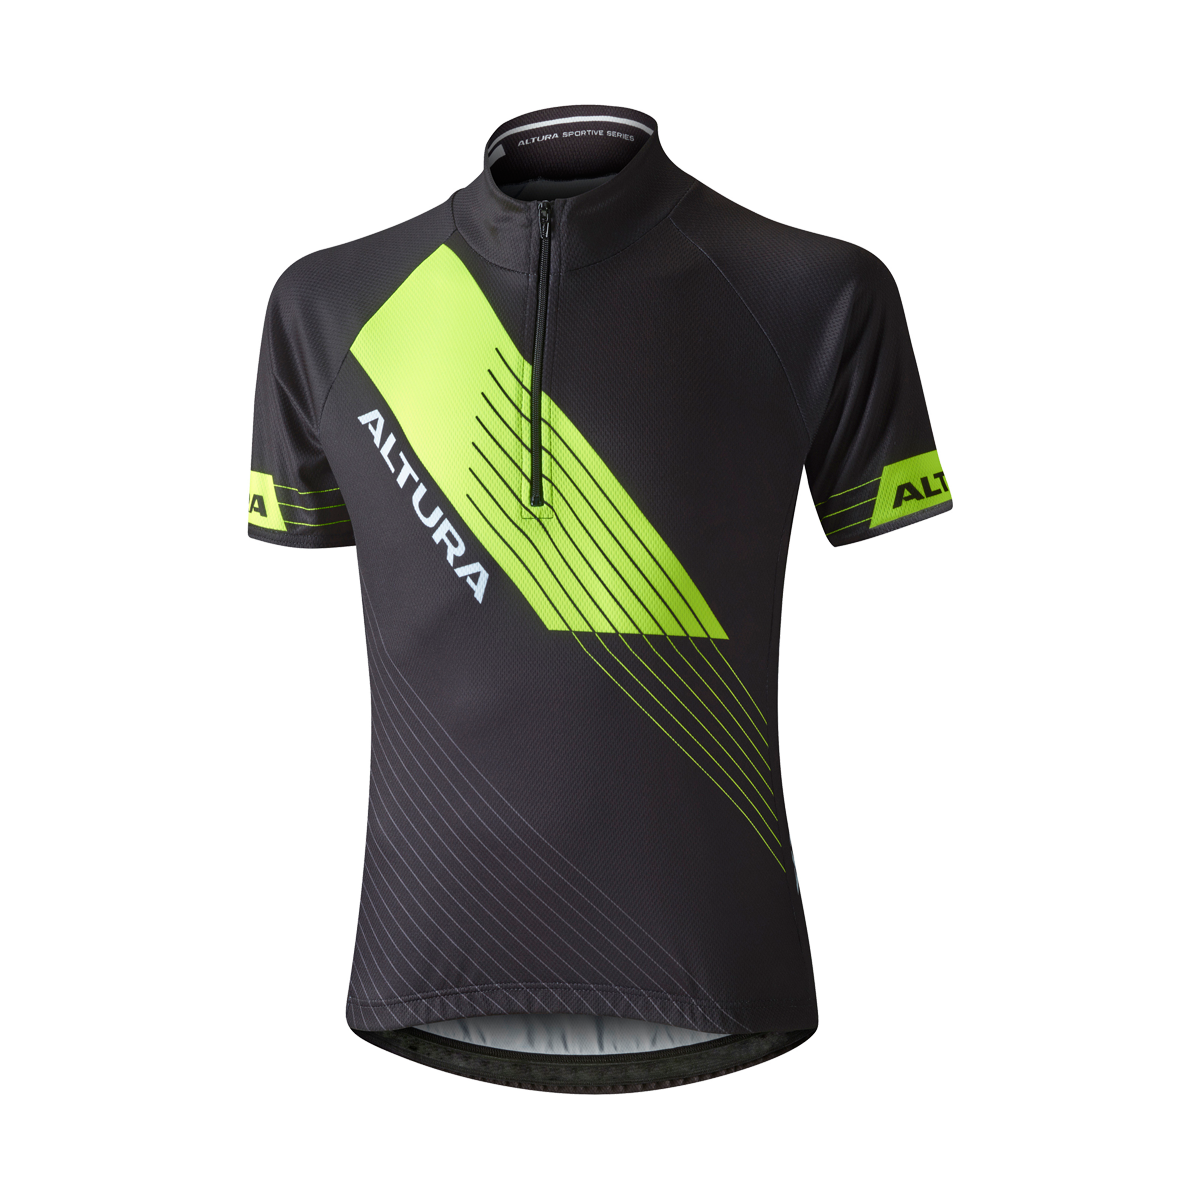 ALTURA YOUTH SPORTIVE SHORT SLEEVE JERSEY 2016: BLUE/BLACK 10-12YRS